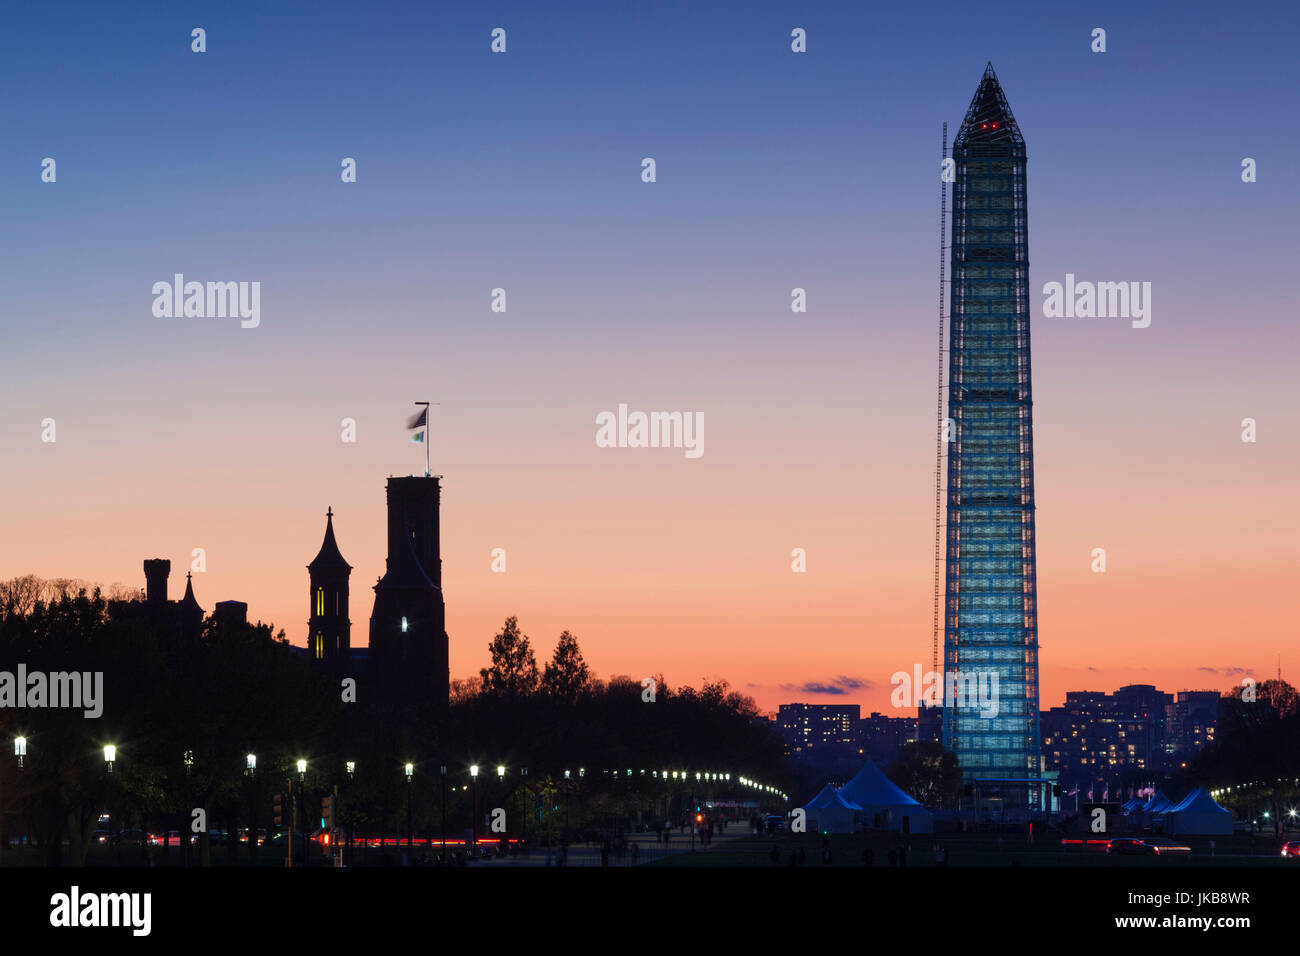 USA, Washington DC, National Mall, Smithsonian Castle et Washington Monument, dusk Photo Stock